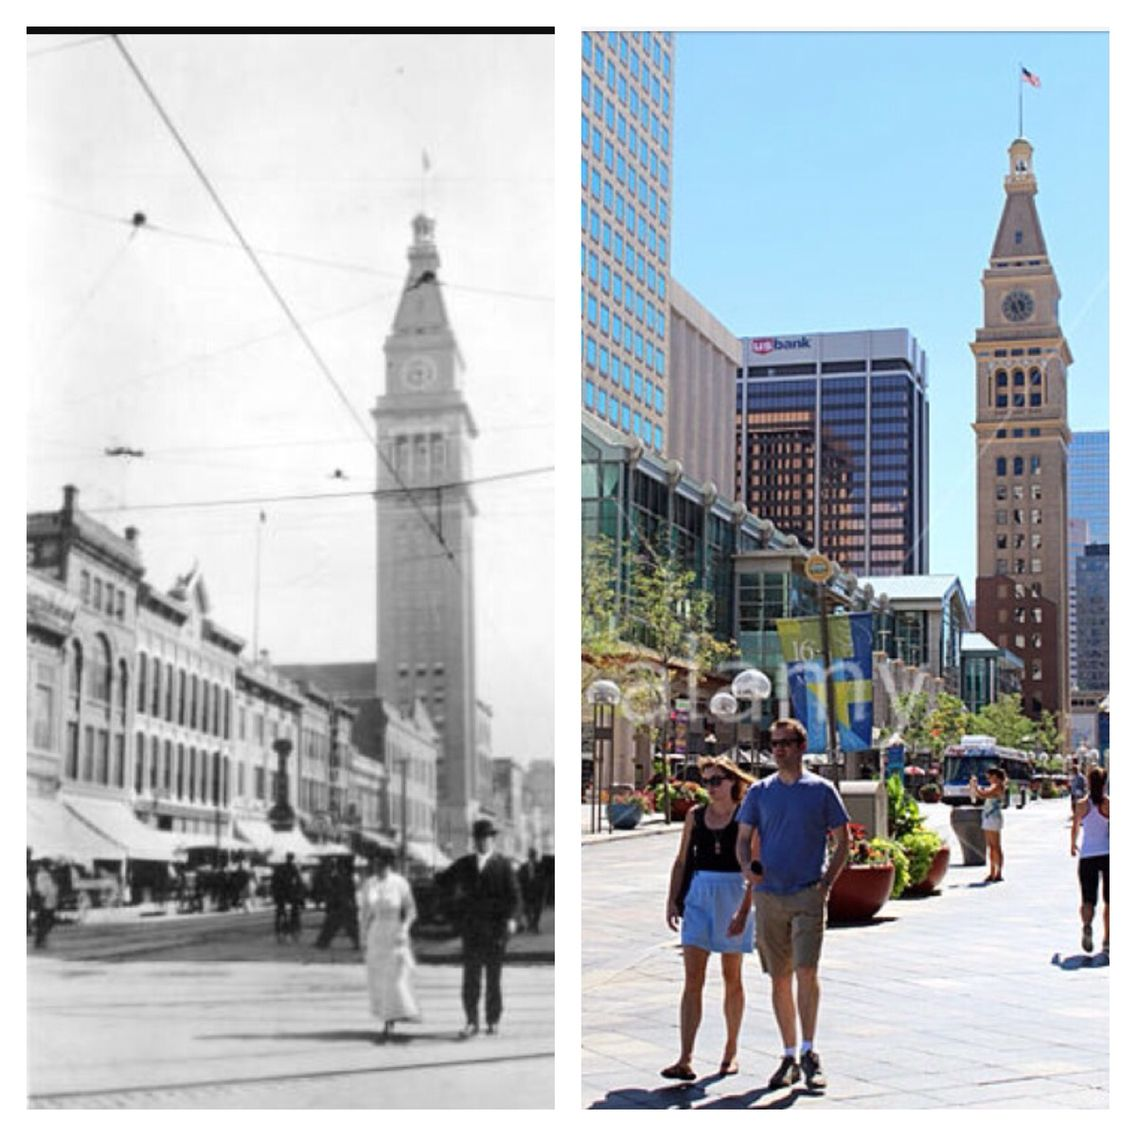 Then And Now. 16th Street In Downtown Denver, CO (LoDo